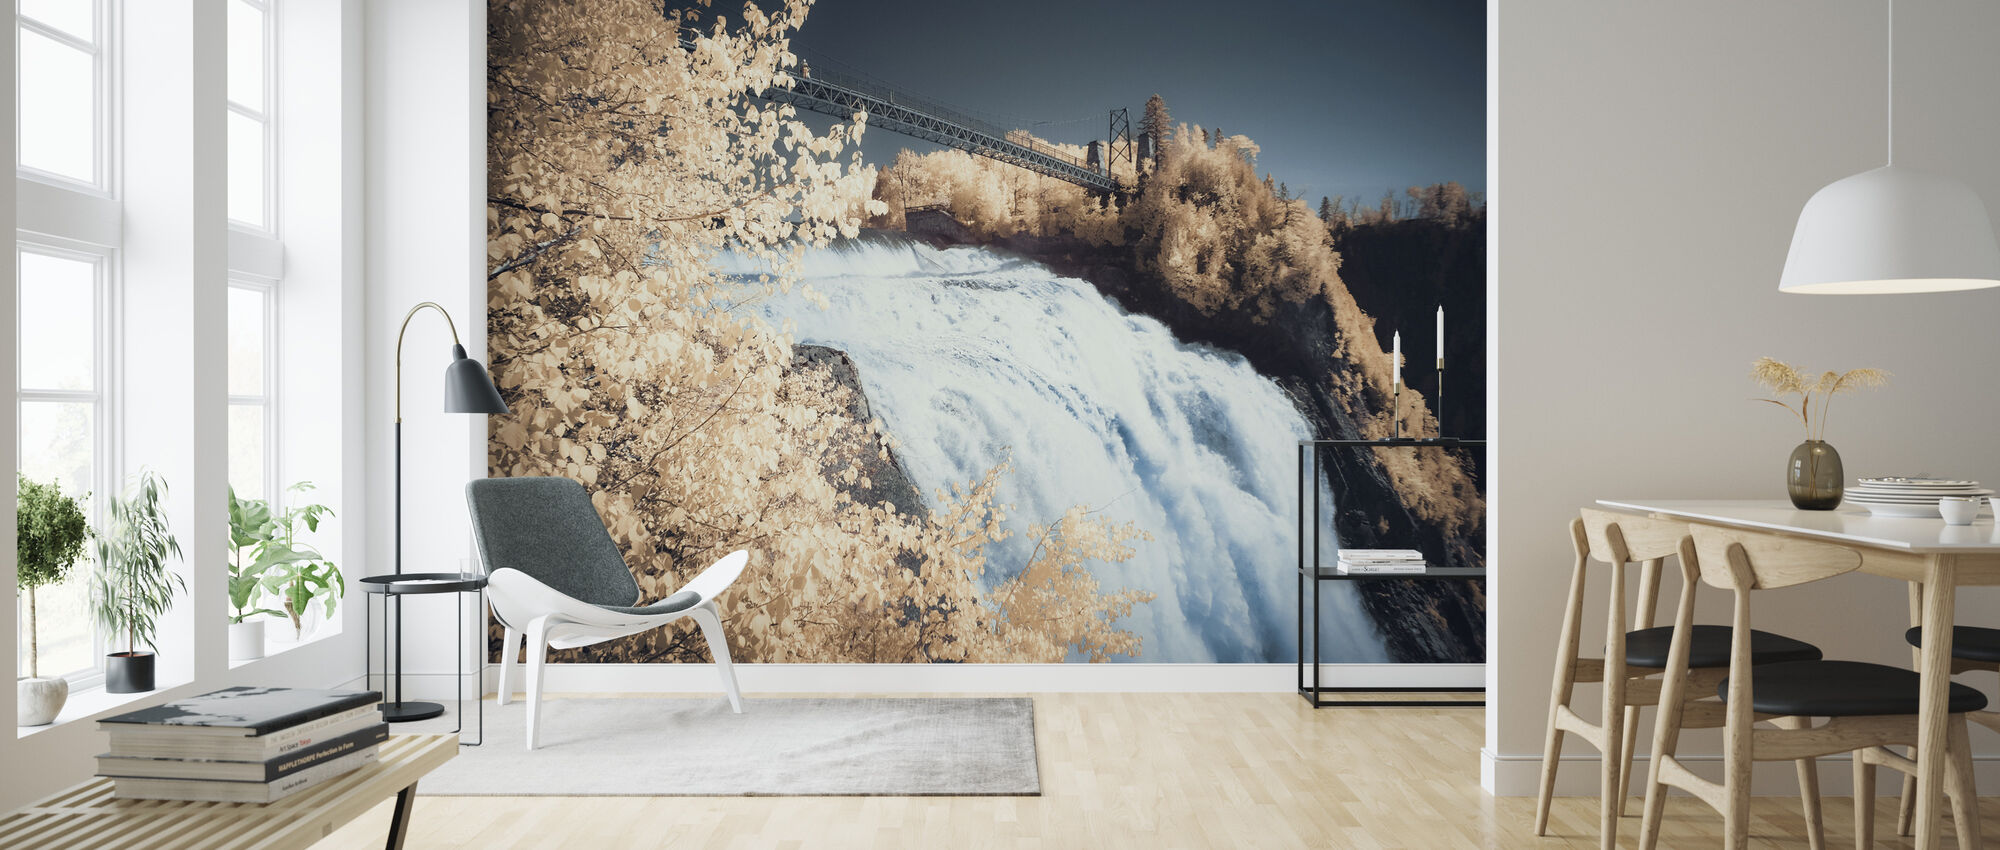 Passage High above the Clouds - Wallpaper - Living Room